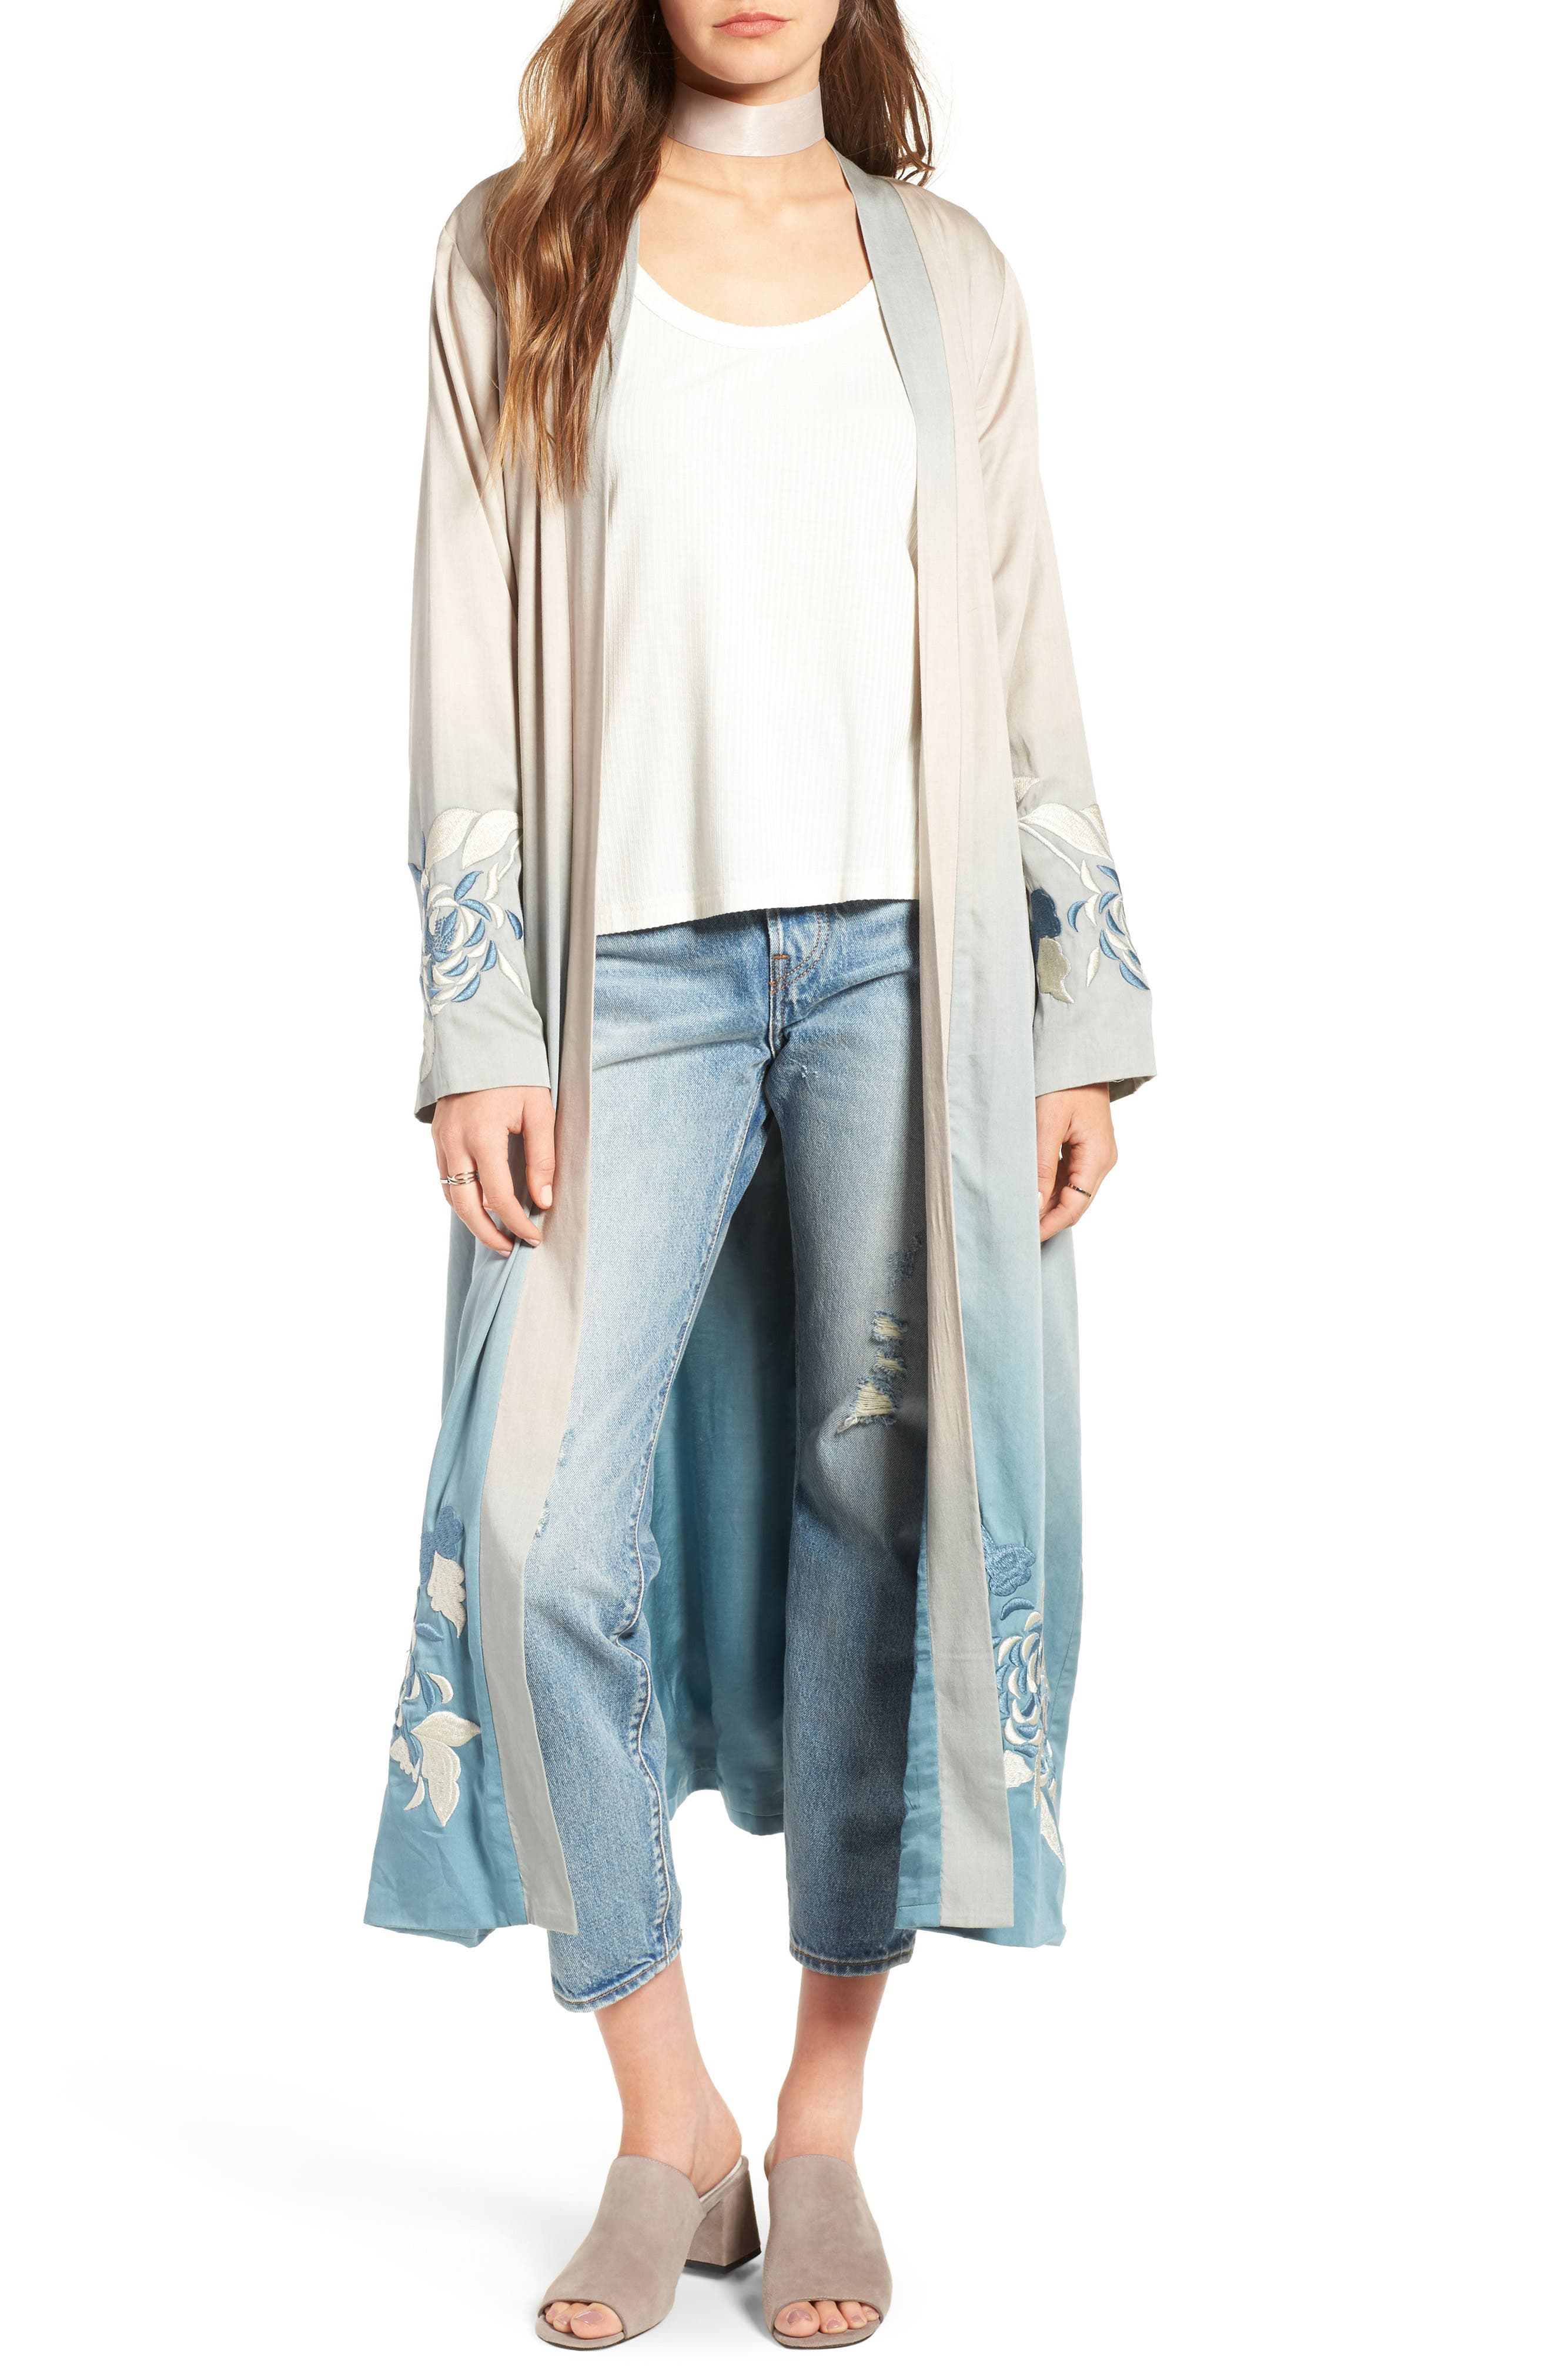 Silversage Embroidered Duster Jacket,                             Main thumbnail 1, color,                             475